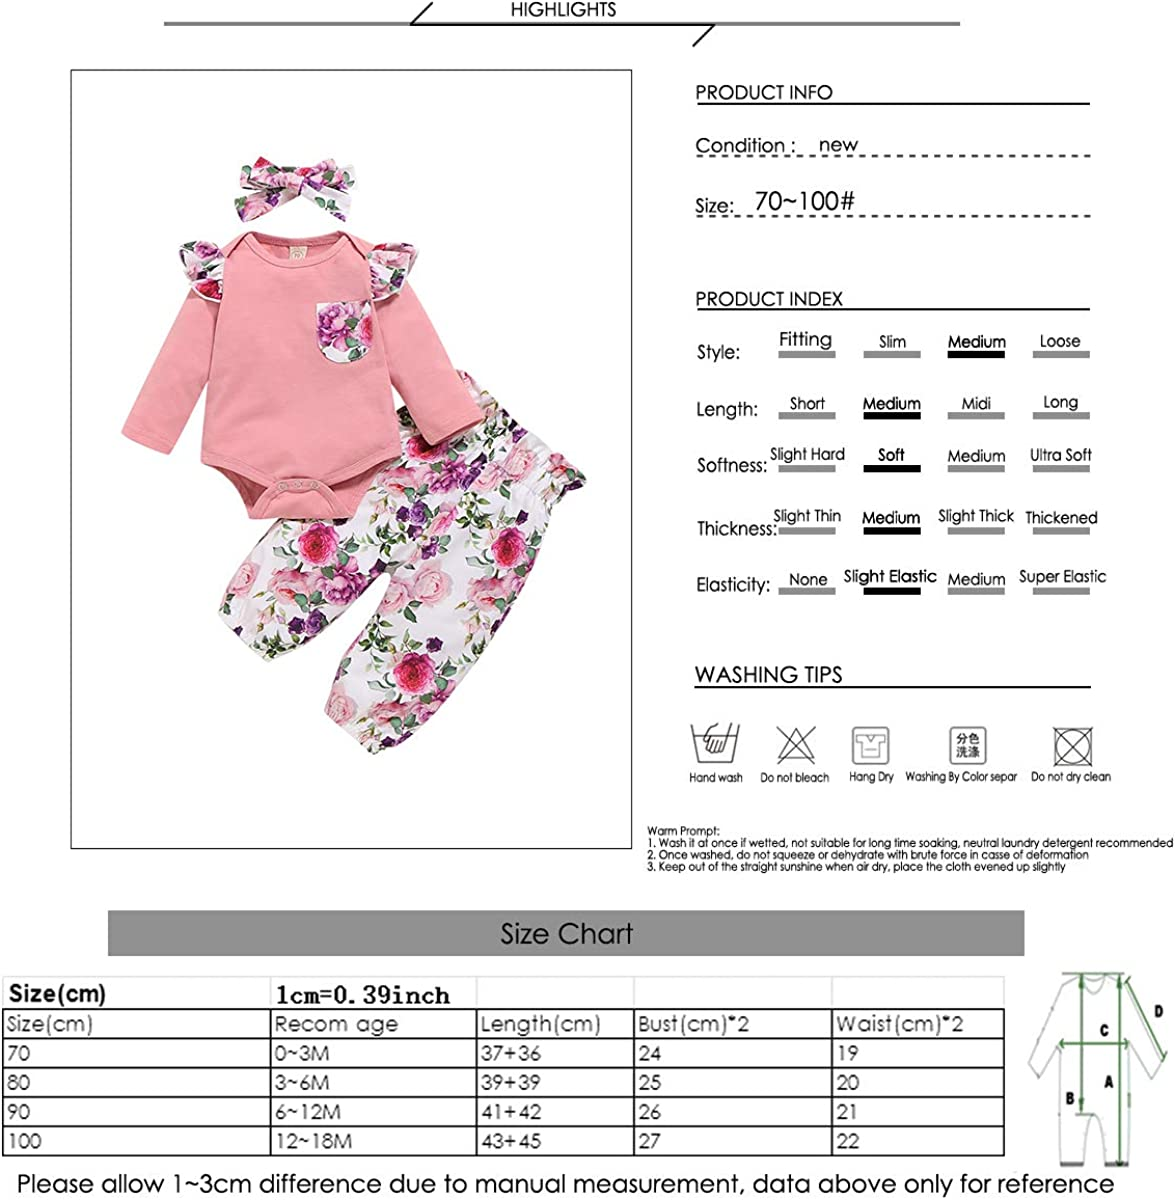 Camidy 3Pcs Newborn Baby Girl Cotton Romper Floral Pants Headband Outfit Clothes